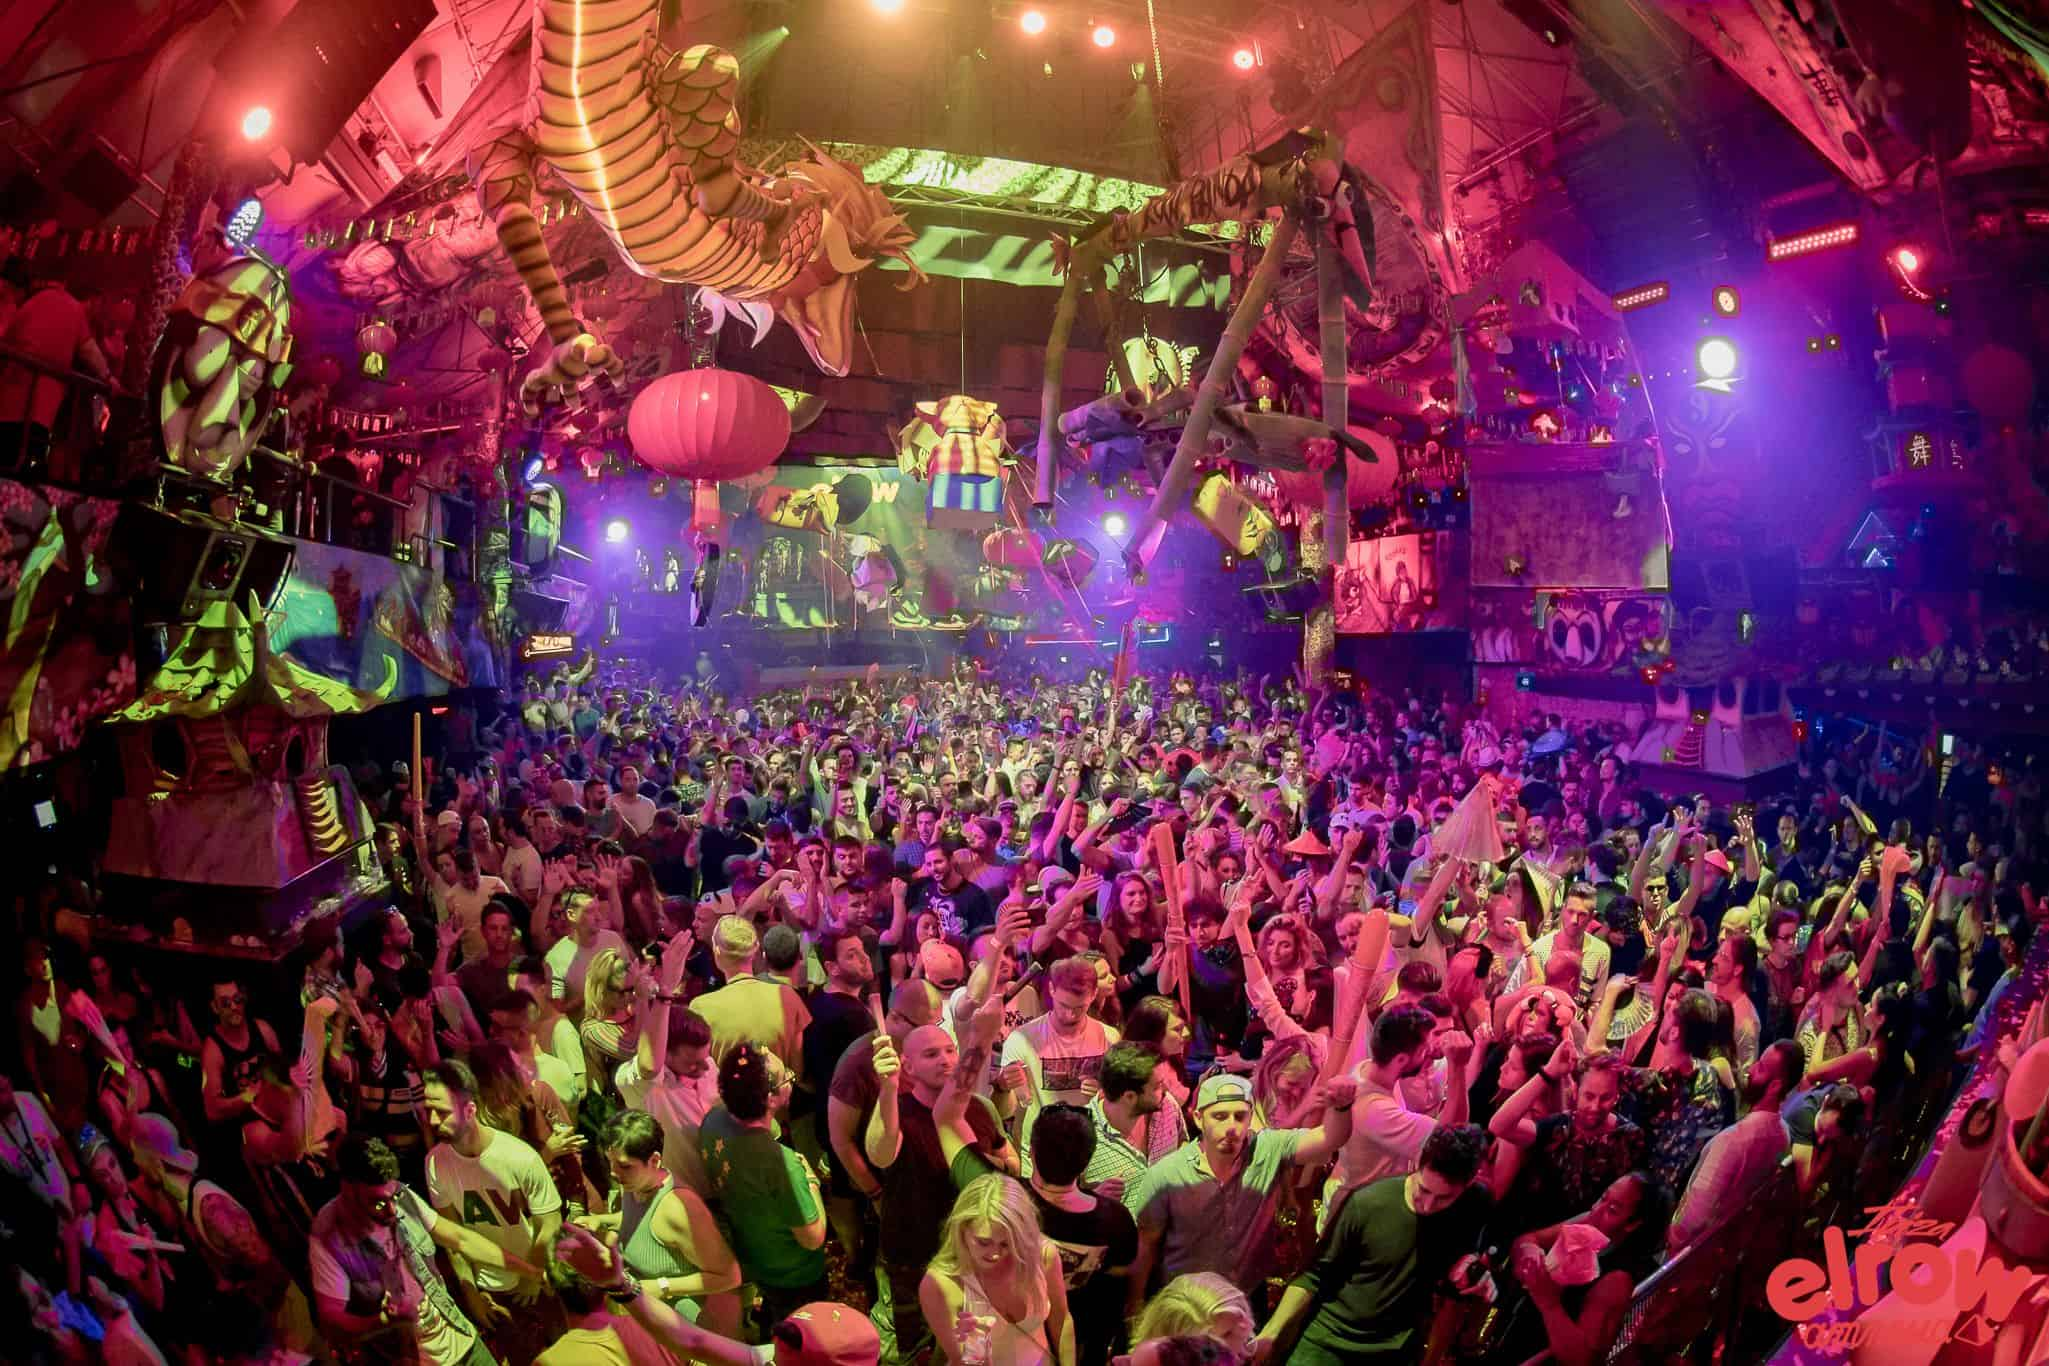 Elrow Ibiza 2020 - Tickets, Events and Lineup 2